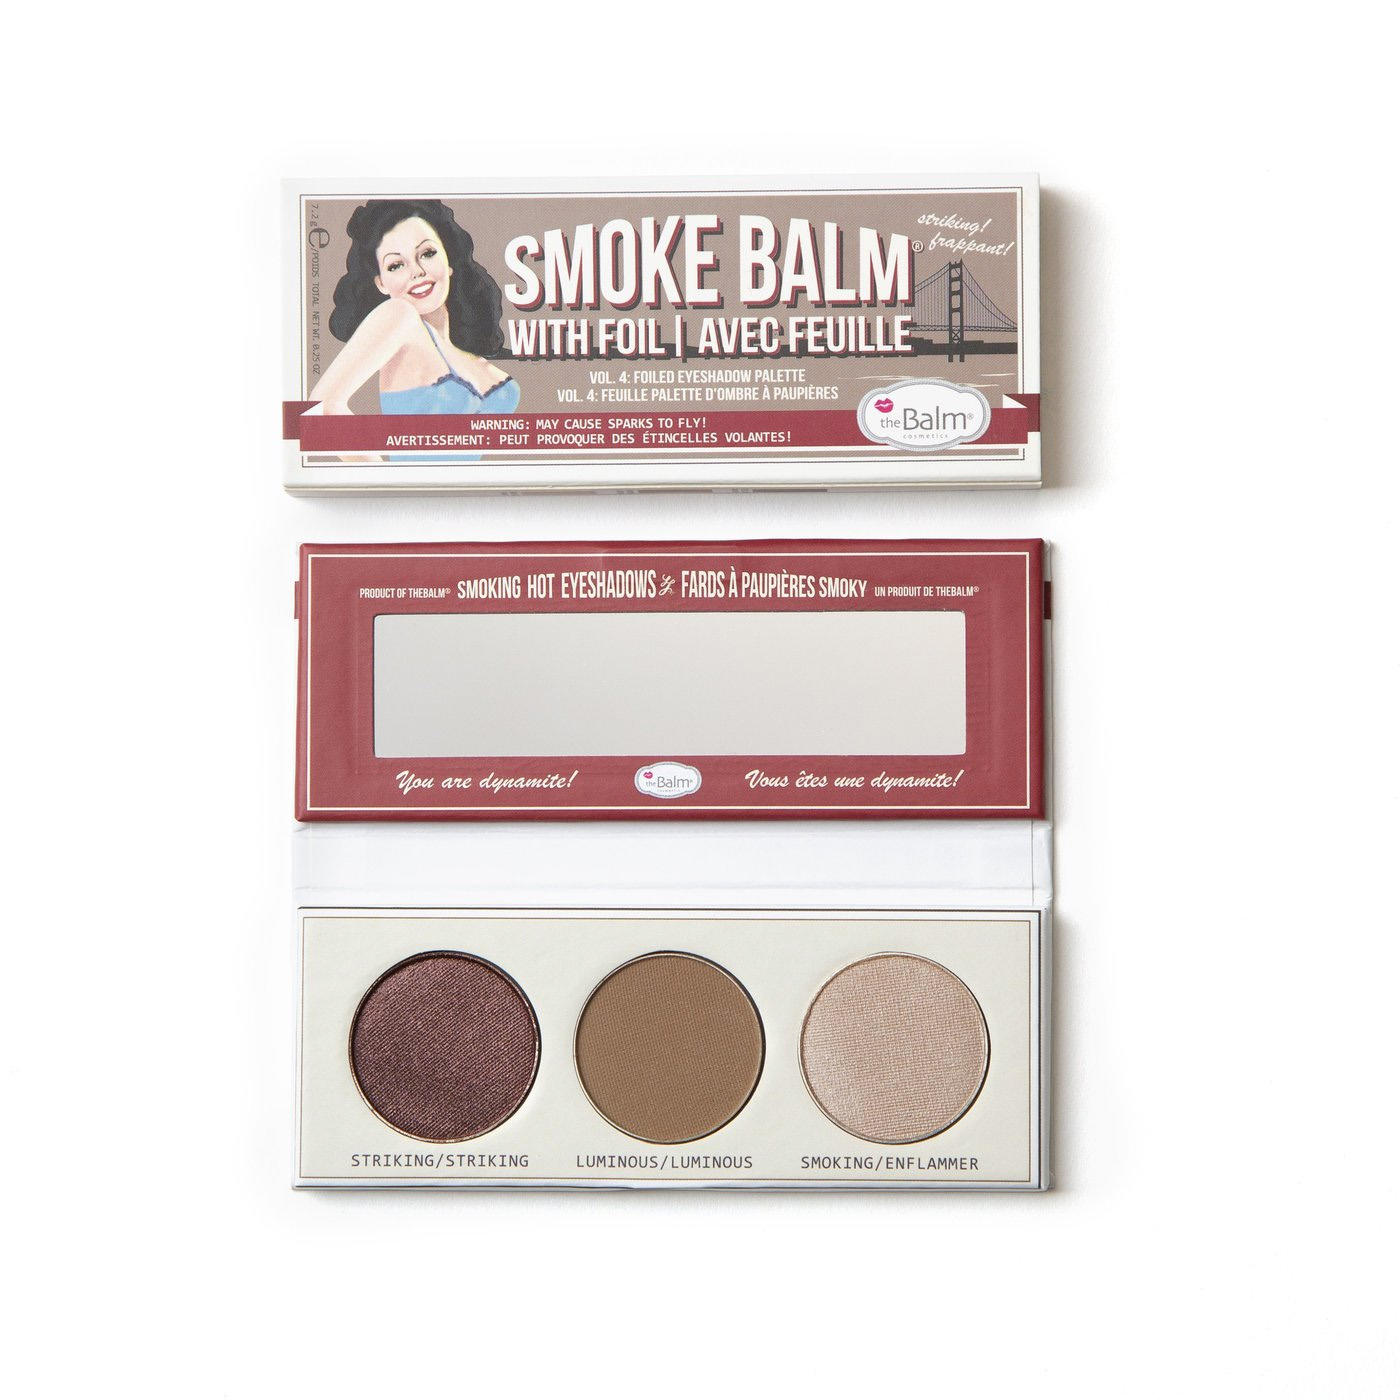 The Balm Smoke Balm Foiled Eyeshadow Palette Vol. 4